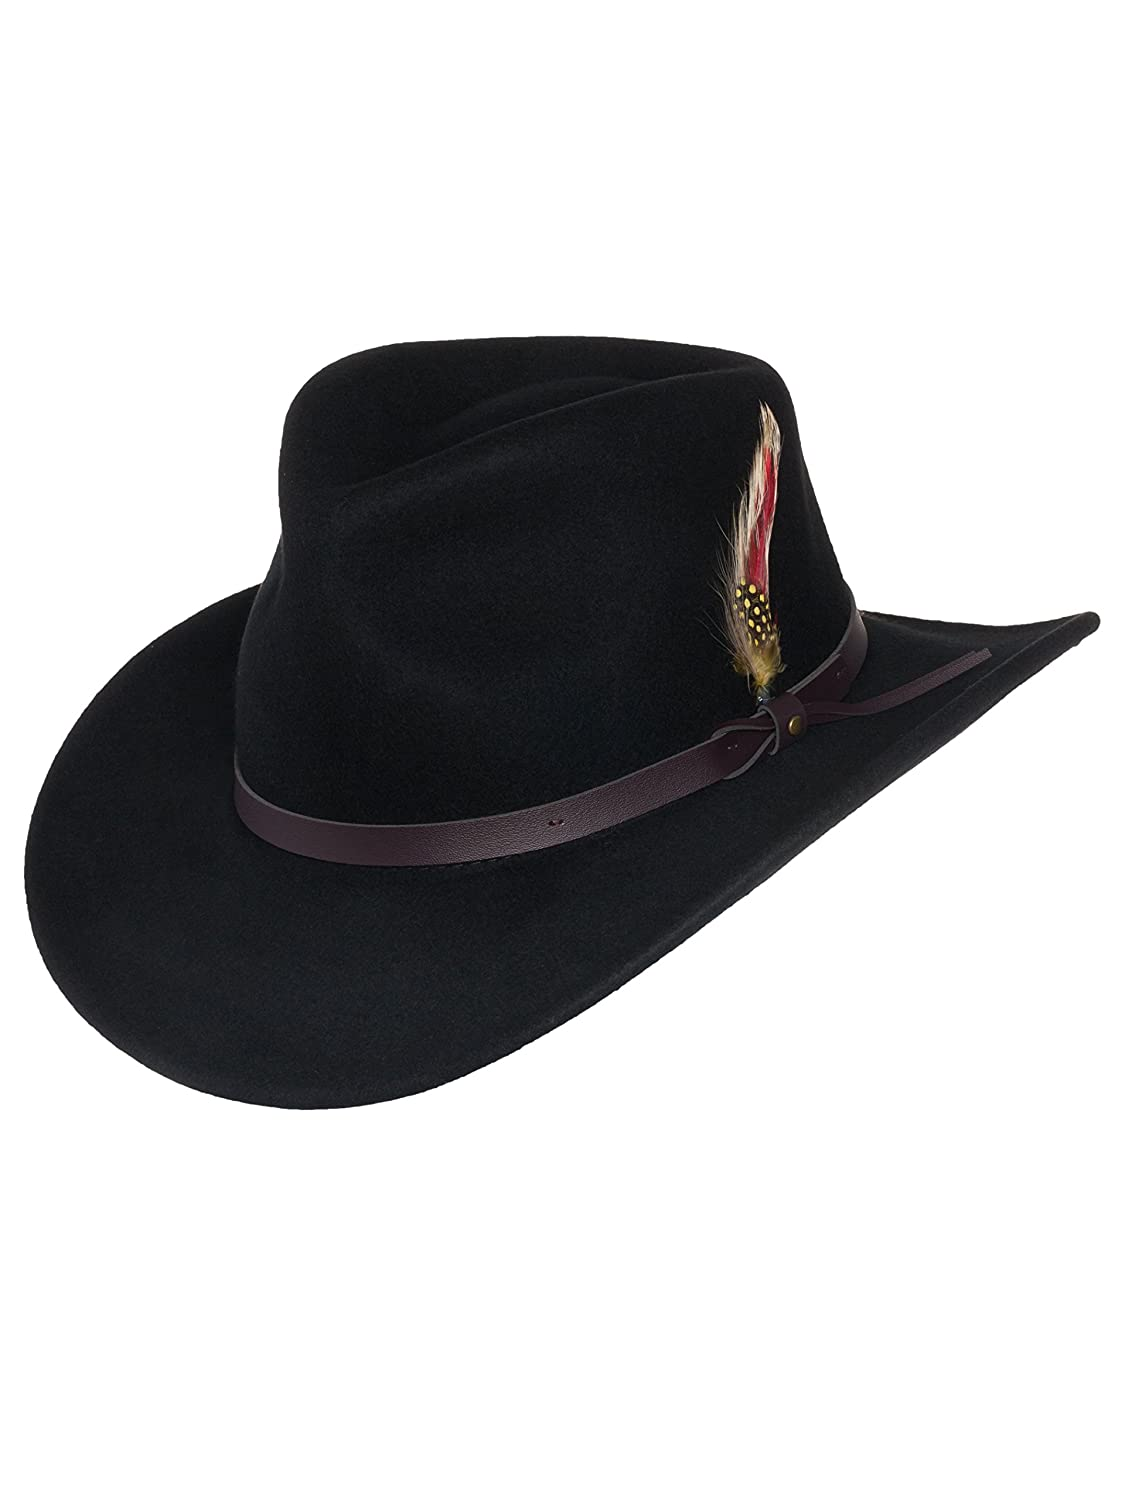 07627ce6fc3d6 Men s Outback Wool Cowboy Hat